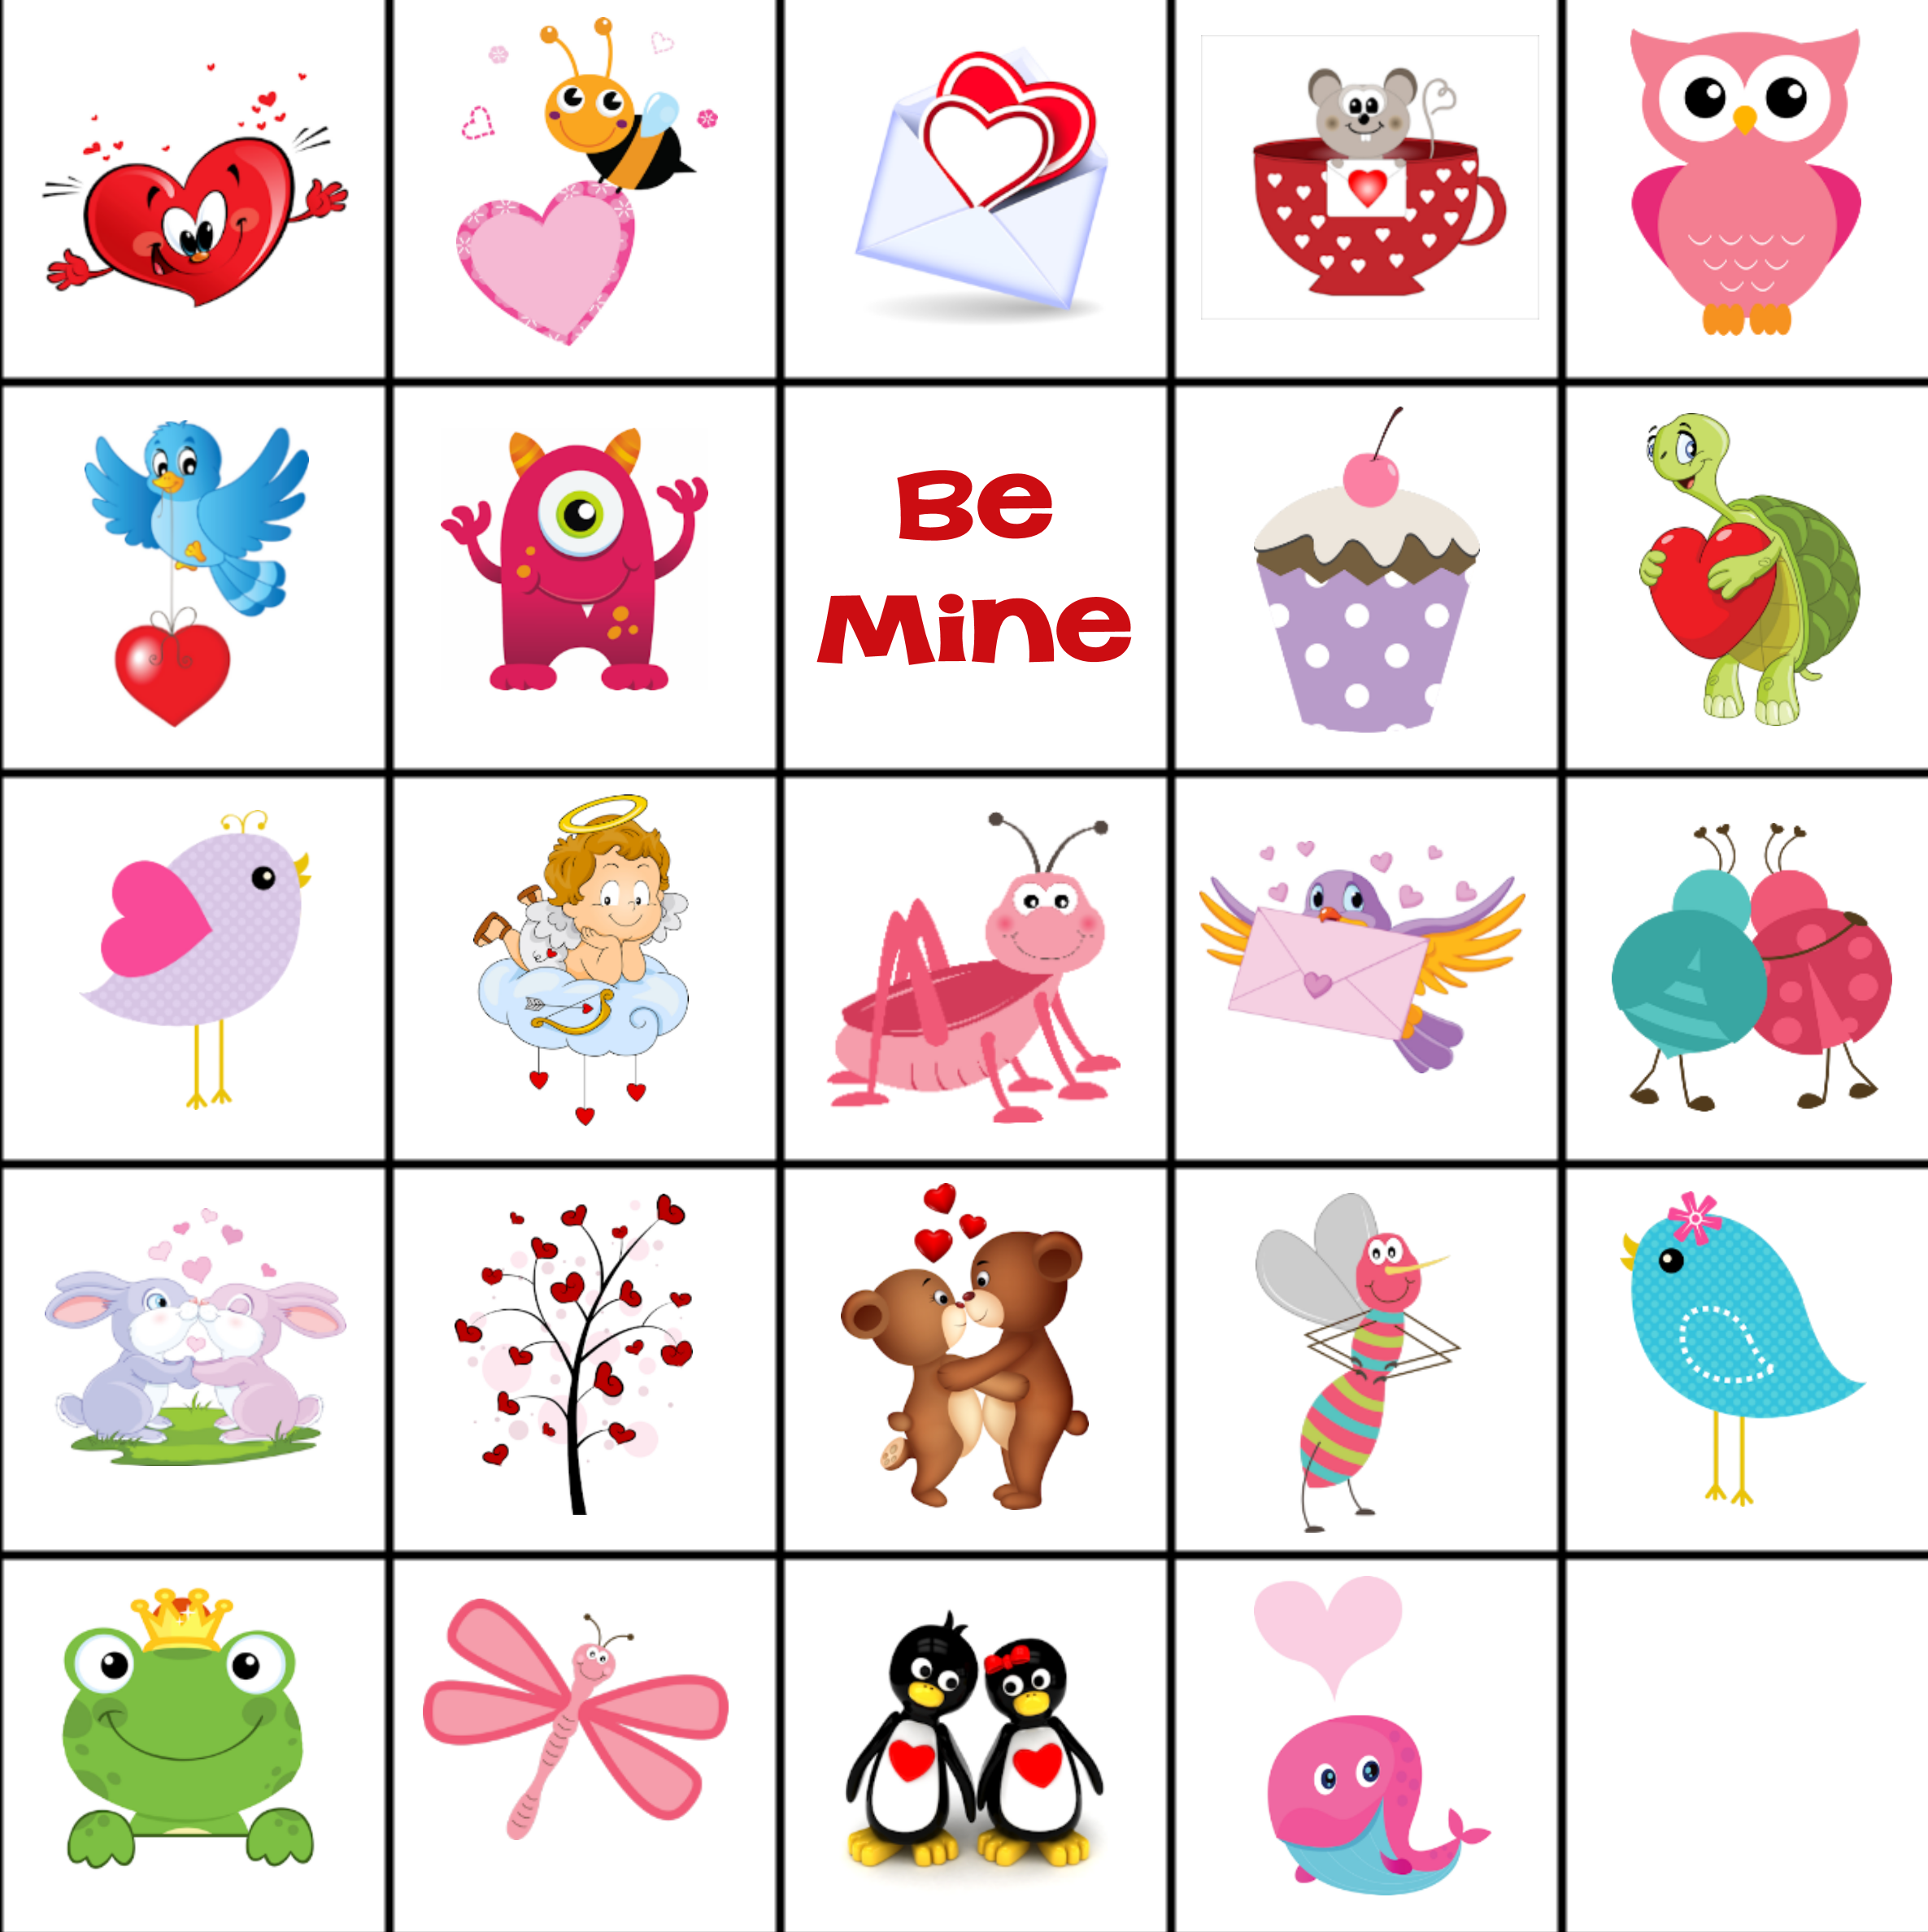 image relating to Printable Valentine Picture named Totally free Printable Valentine Memory Match